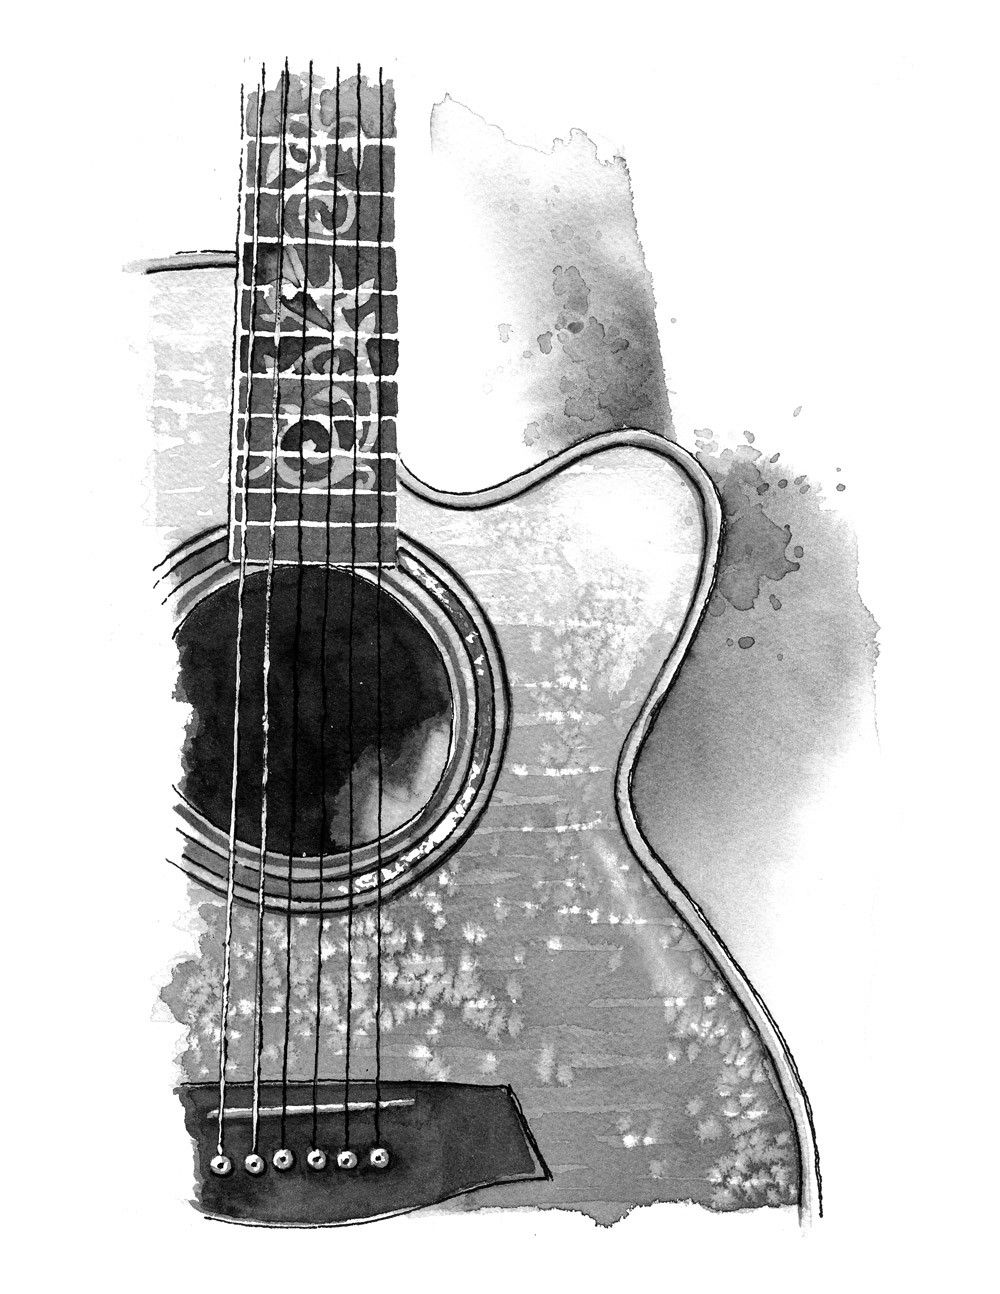 Guitar Tattoo Want To Do A With The Quote When He Sings Even Birds Stop Listen Music Notes Incorporated My Daddy Alway